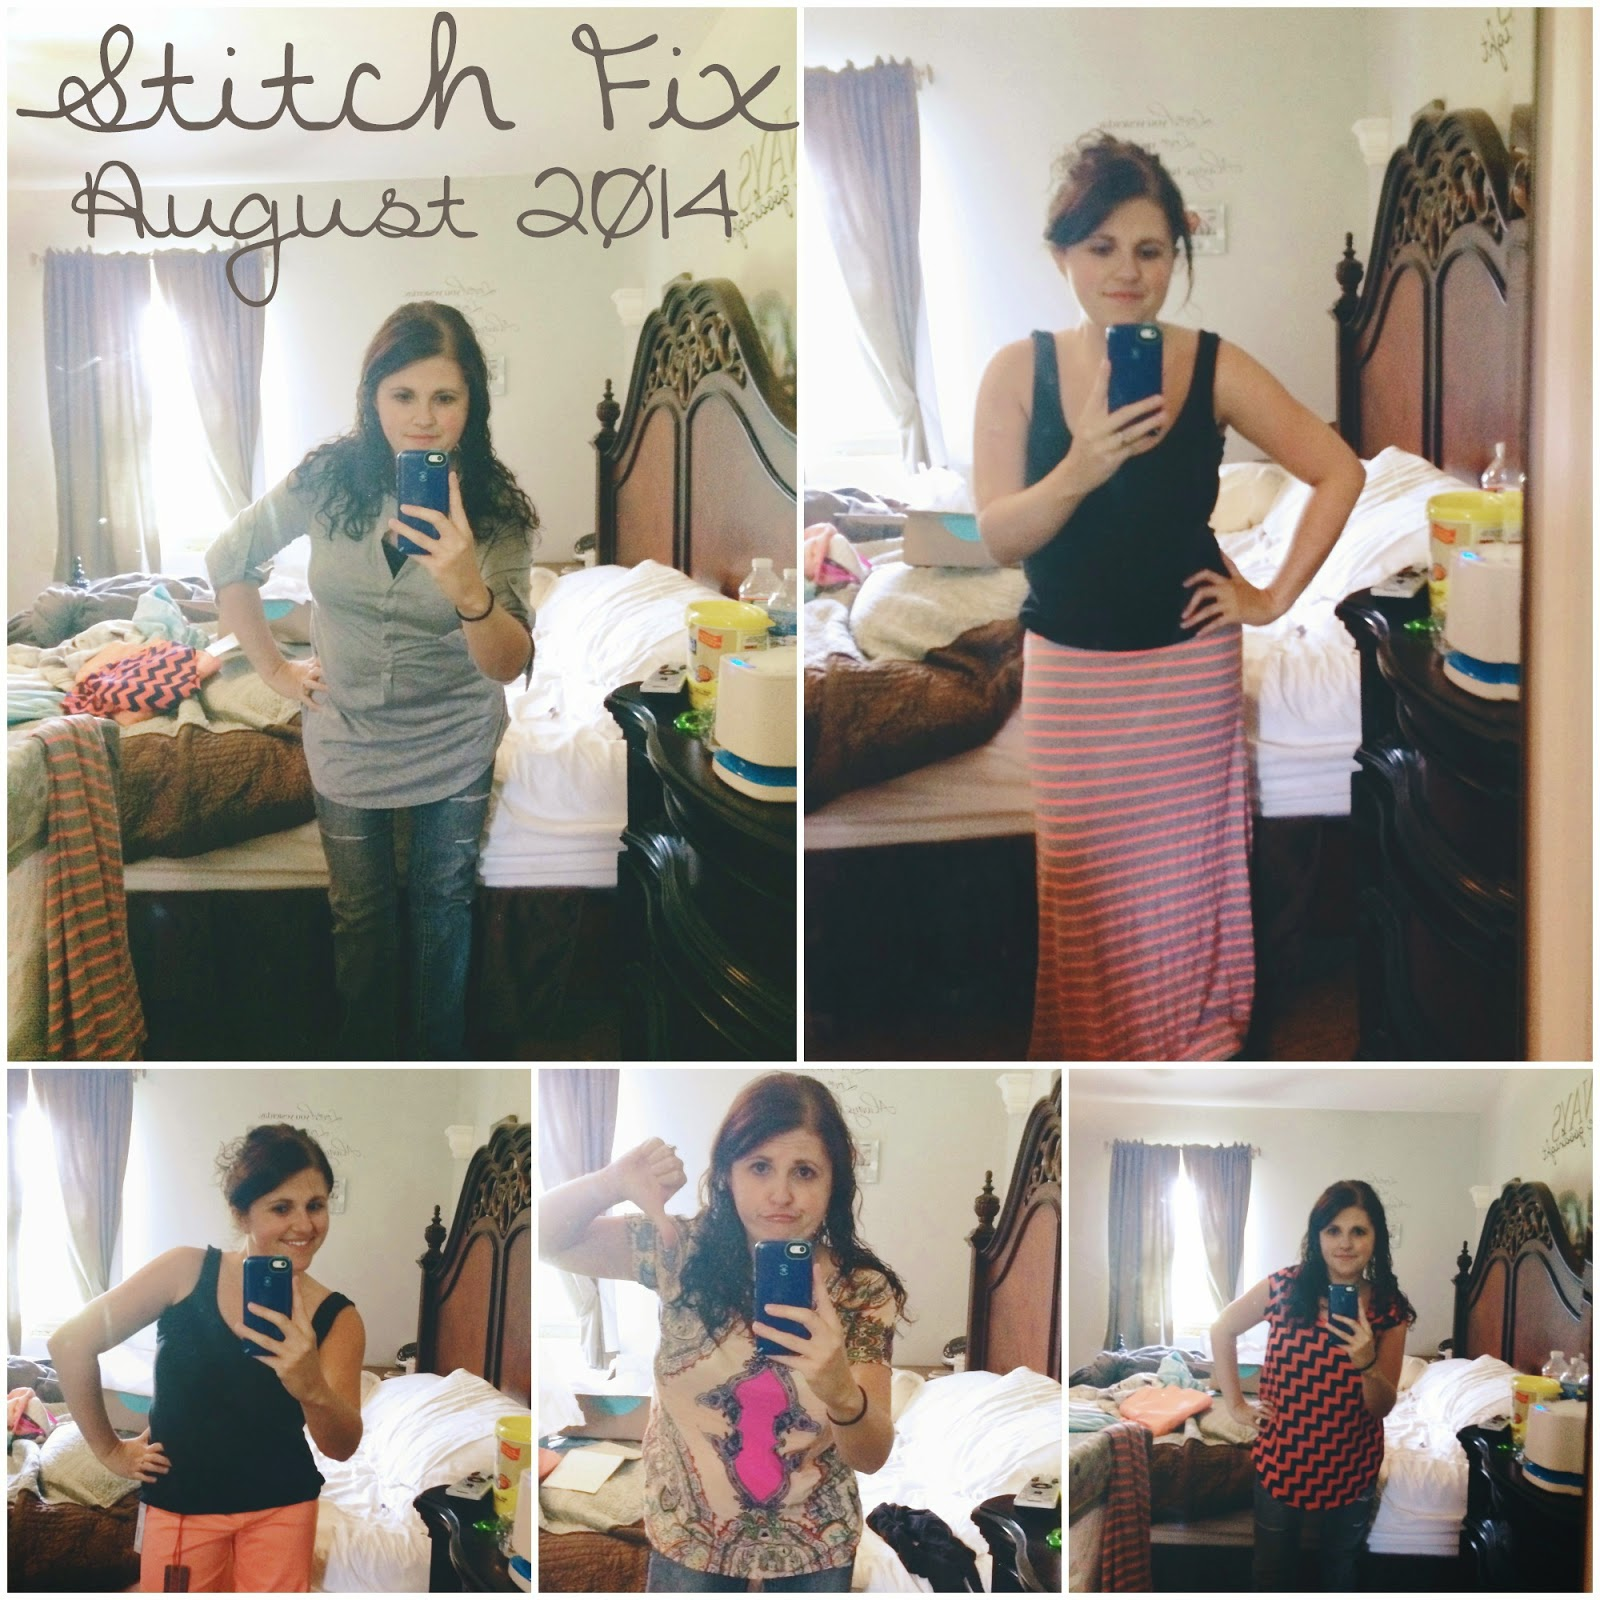 http://www.stitchfix.com/referral/3851252